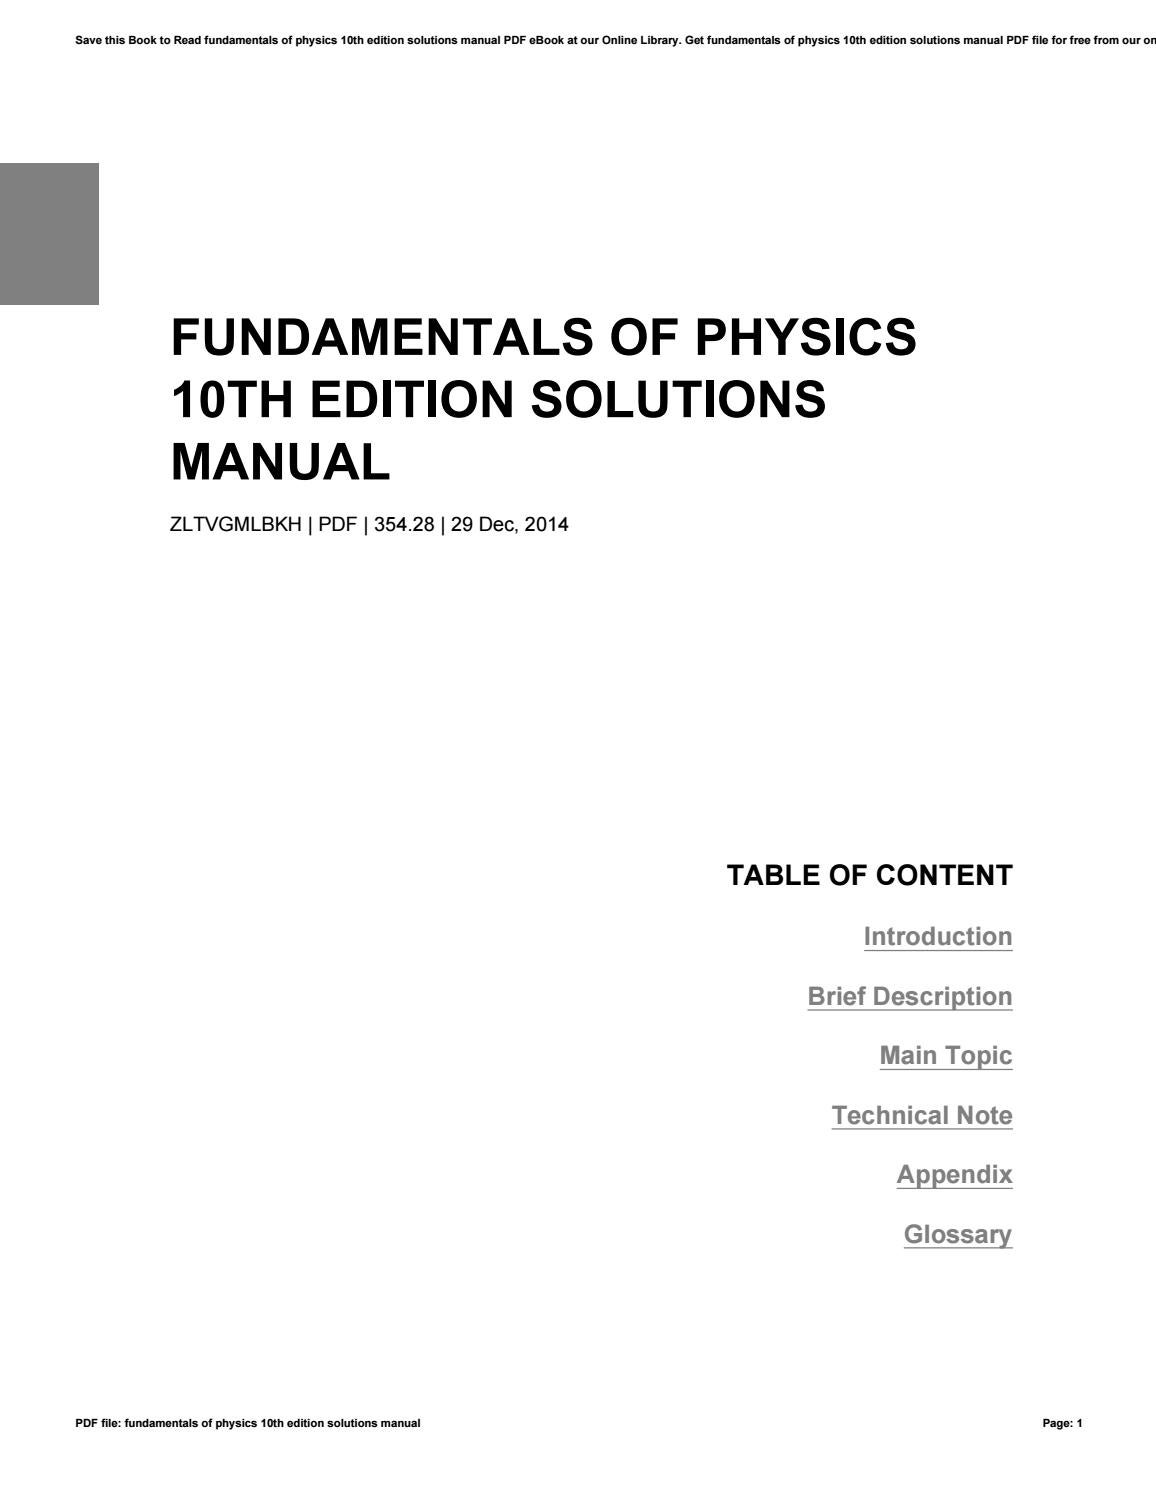 Fundamentals of physics 10th edition solutions manual by JuliusRyan4059 -  issuu